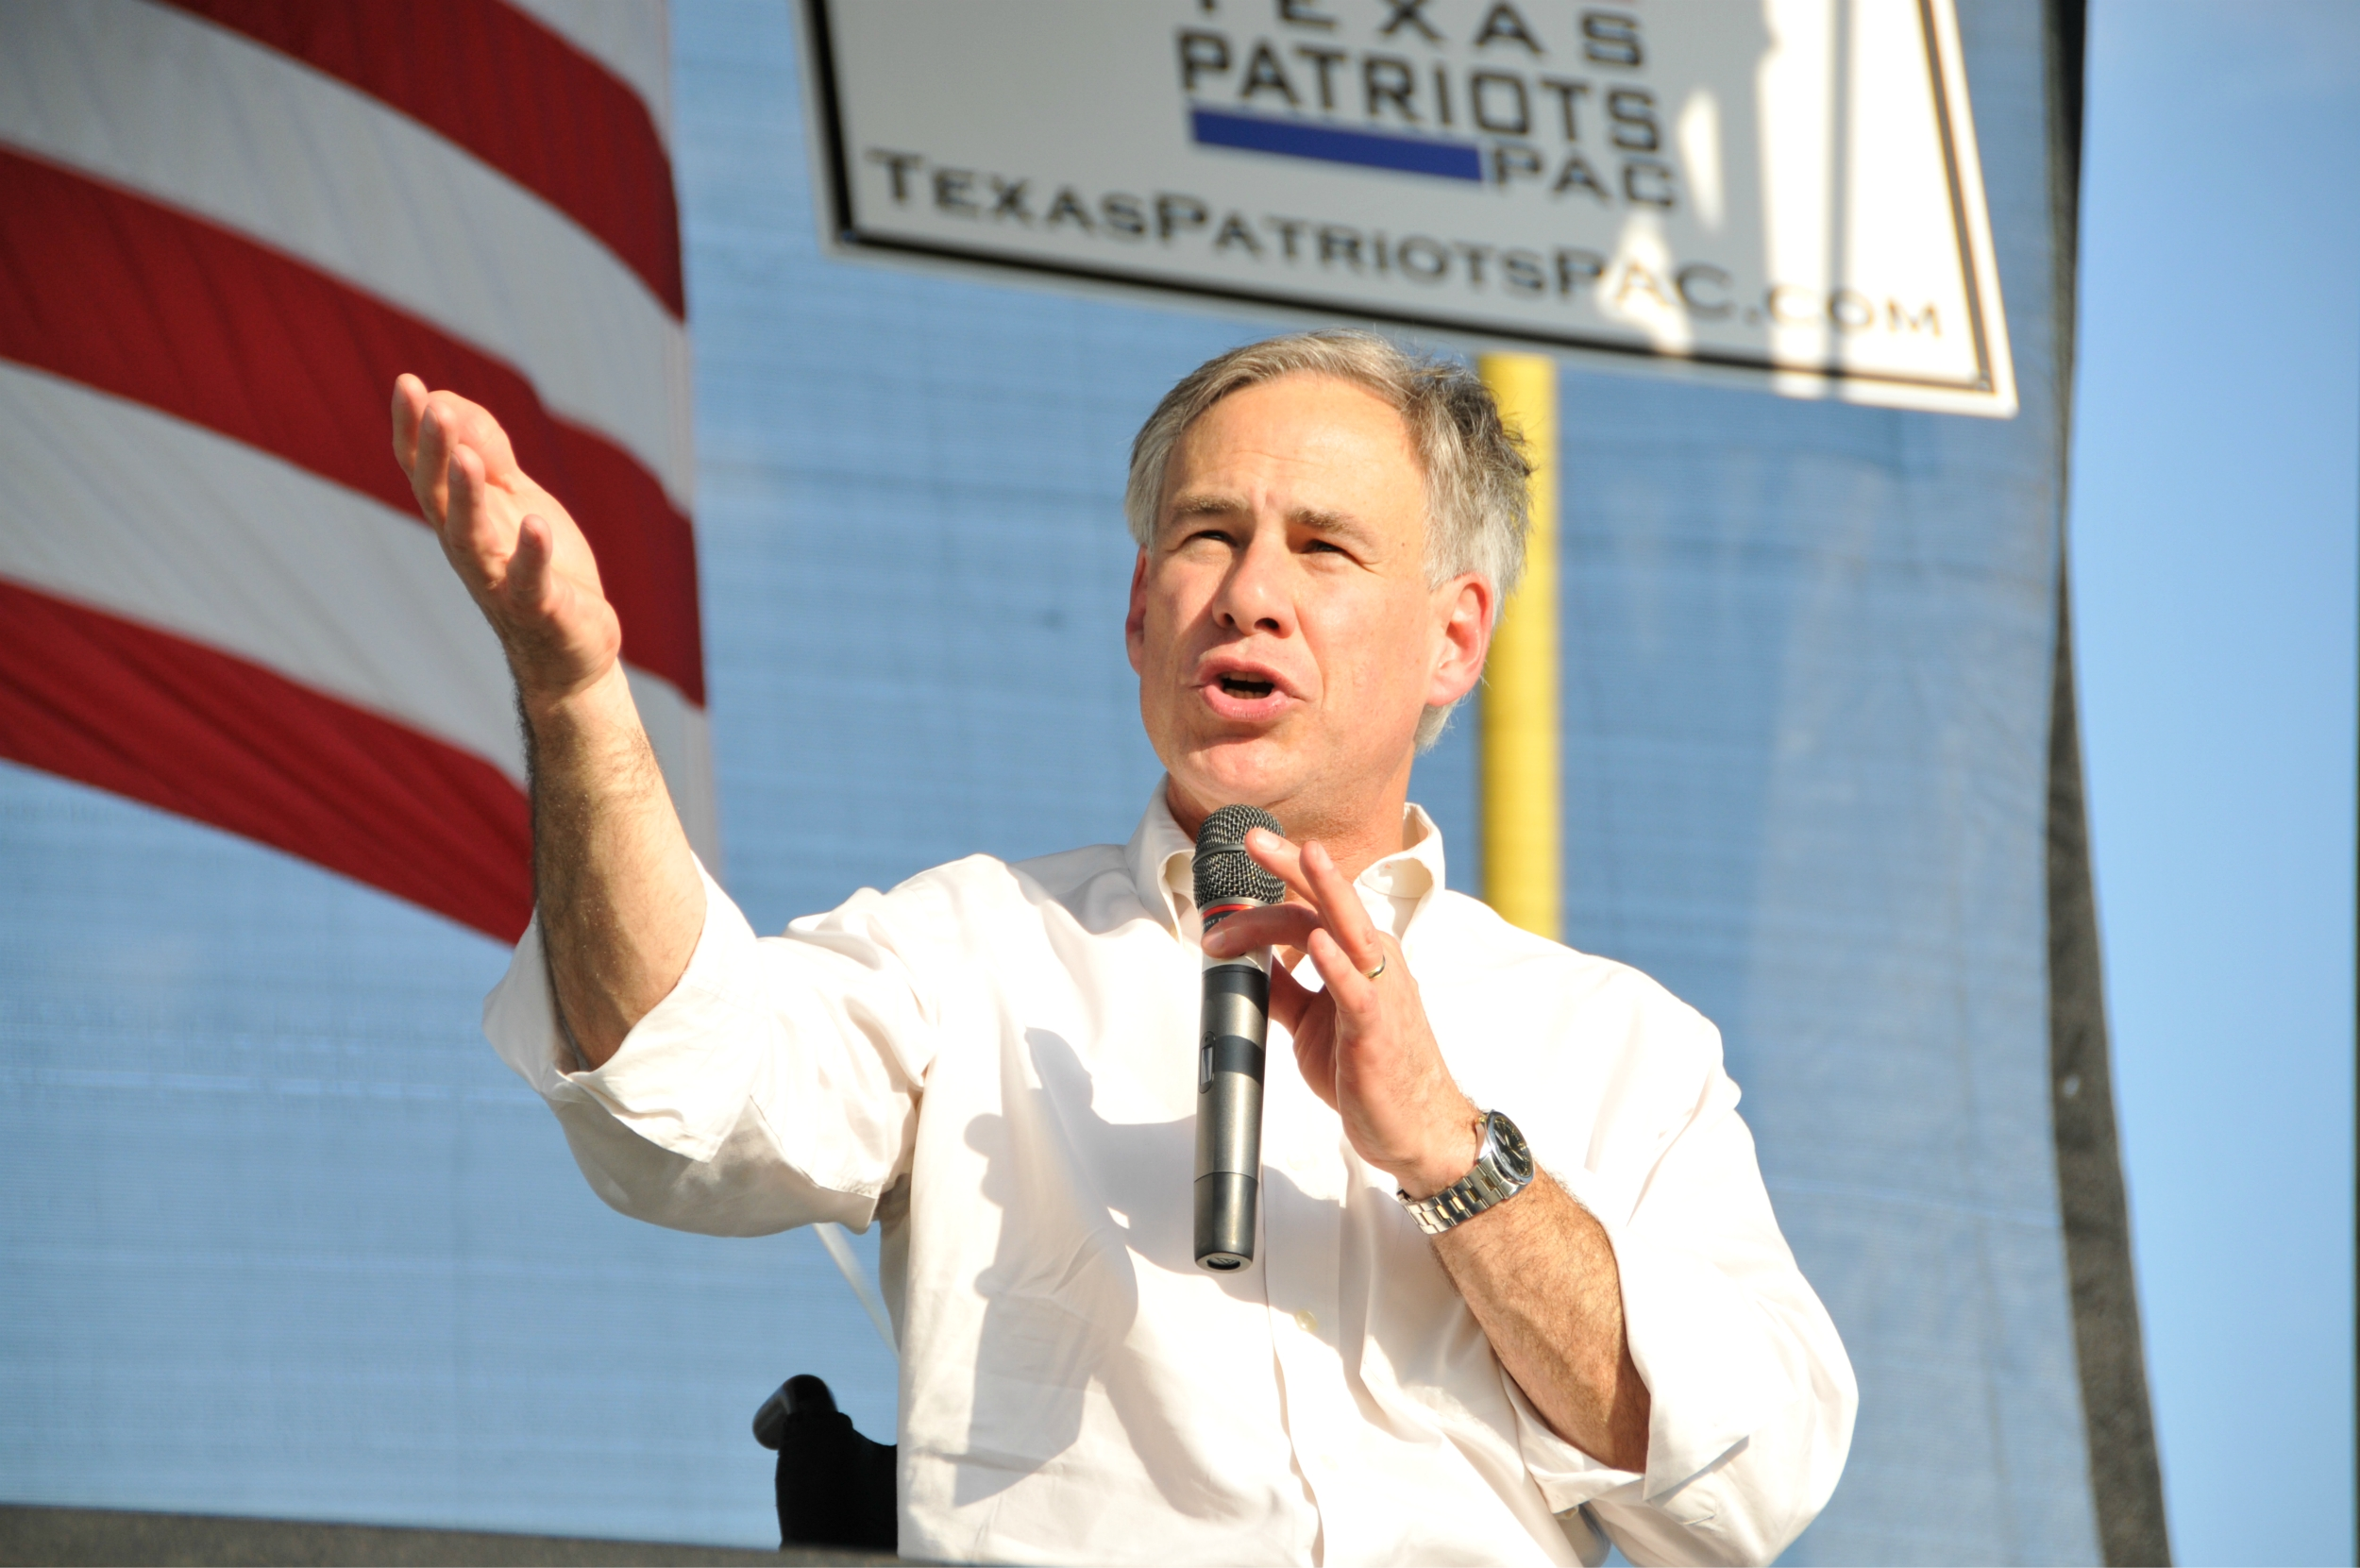 Then-Attorney General Greg Abbott speaking at our rally in Conroe during his campaign for Governor.